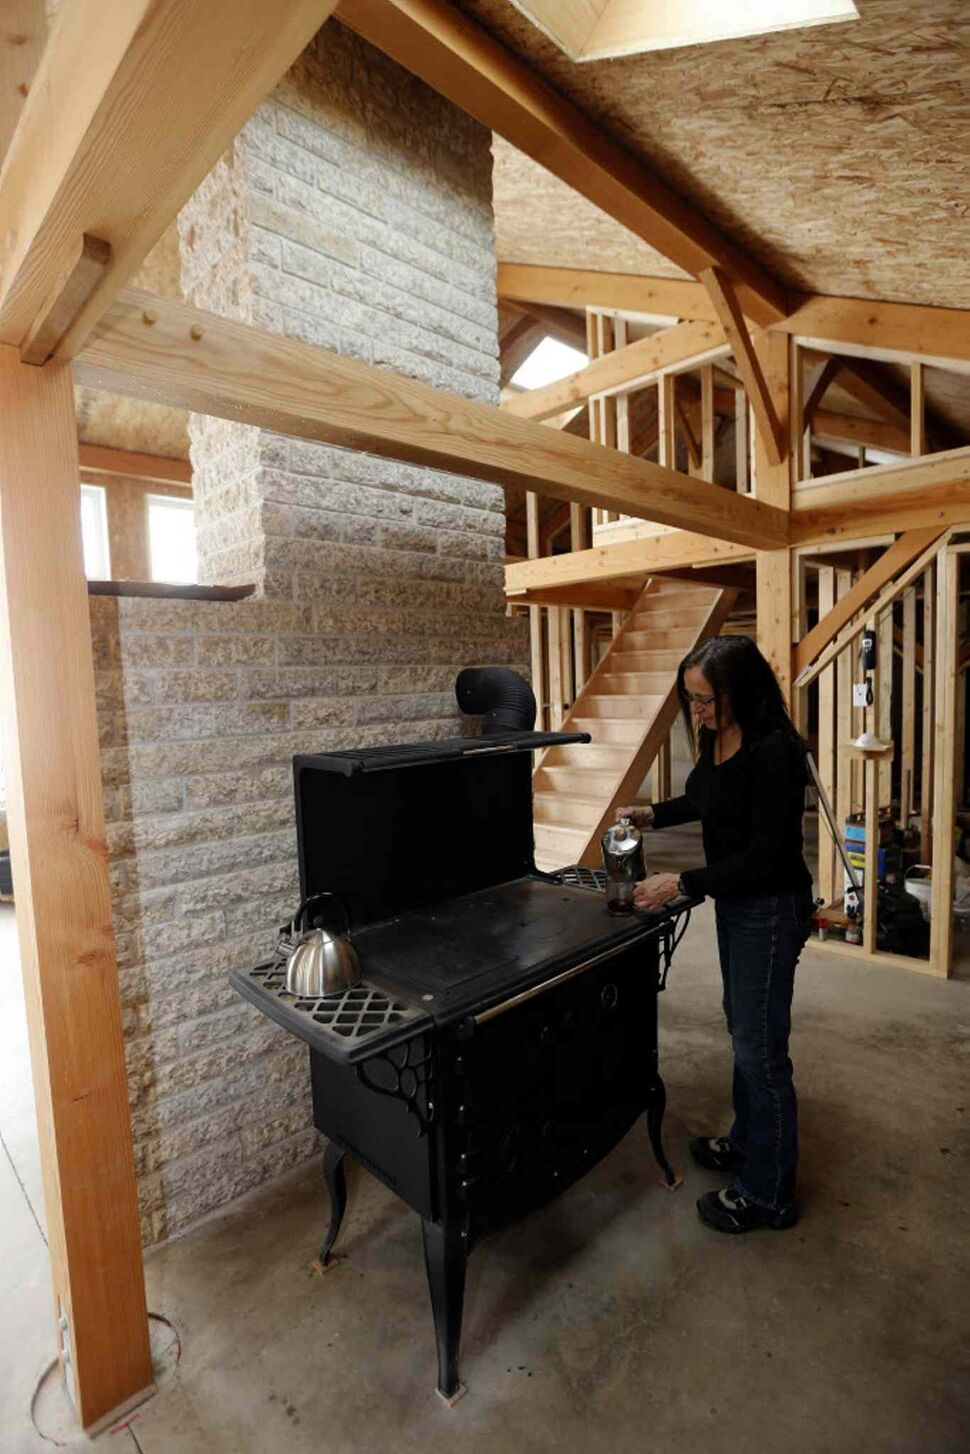 Bev Eert using a wood burning Waterford Stanley wood stove, but the house will have an electric stove when it is finished. (KEN GIGLIOTTI / WINNIPEG FREE PRESS)